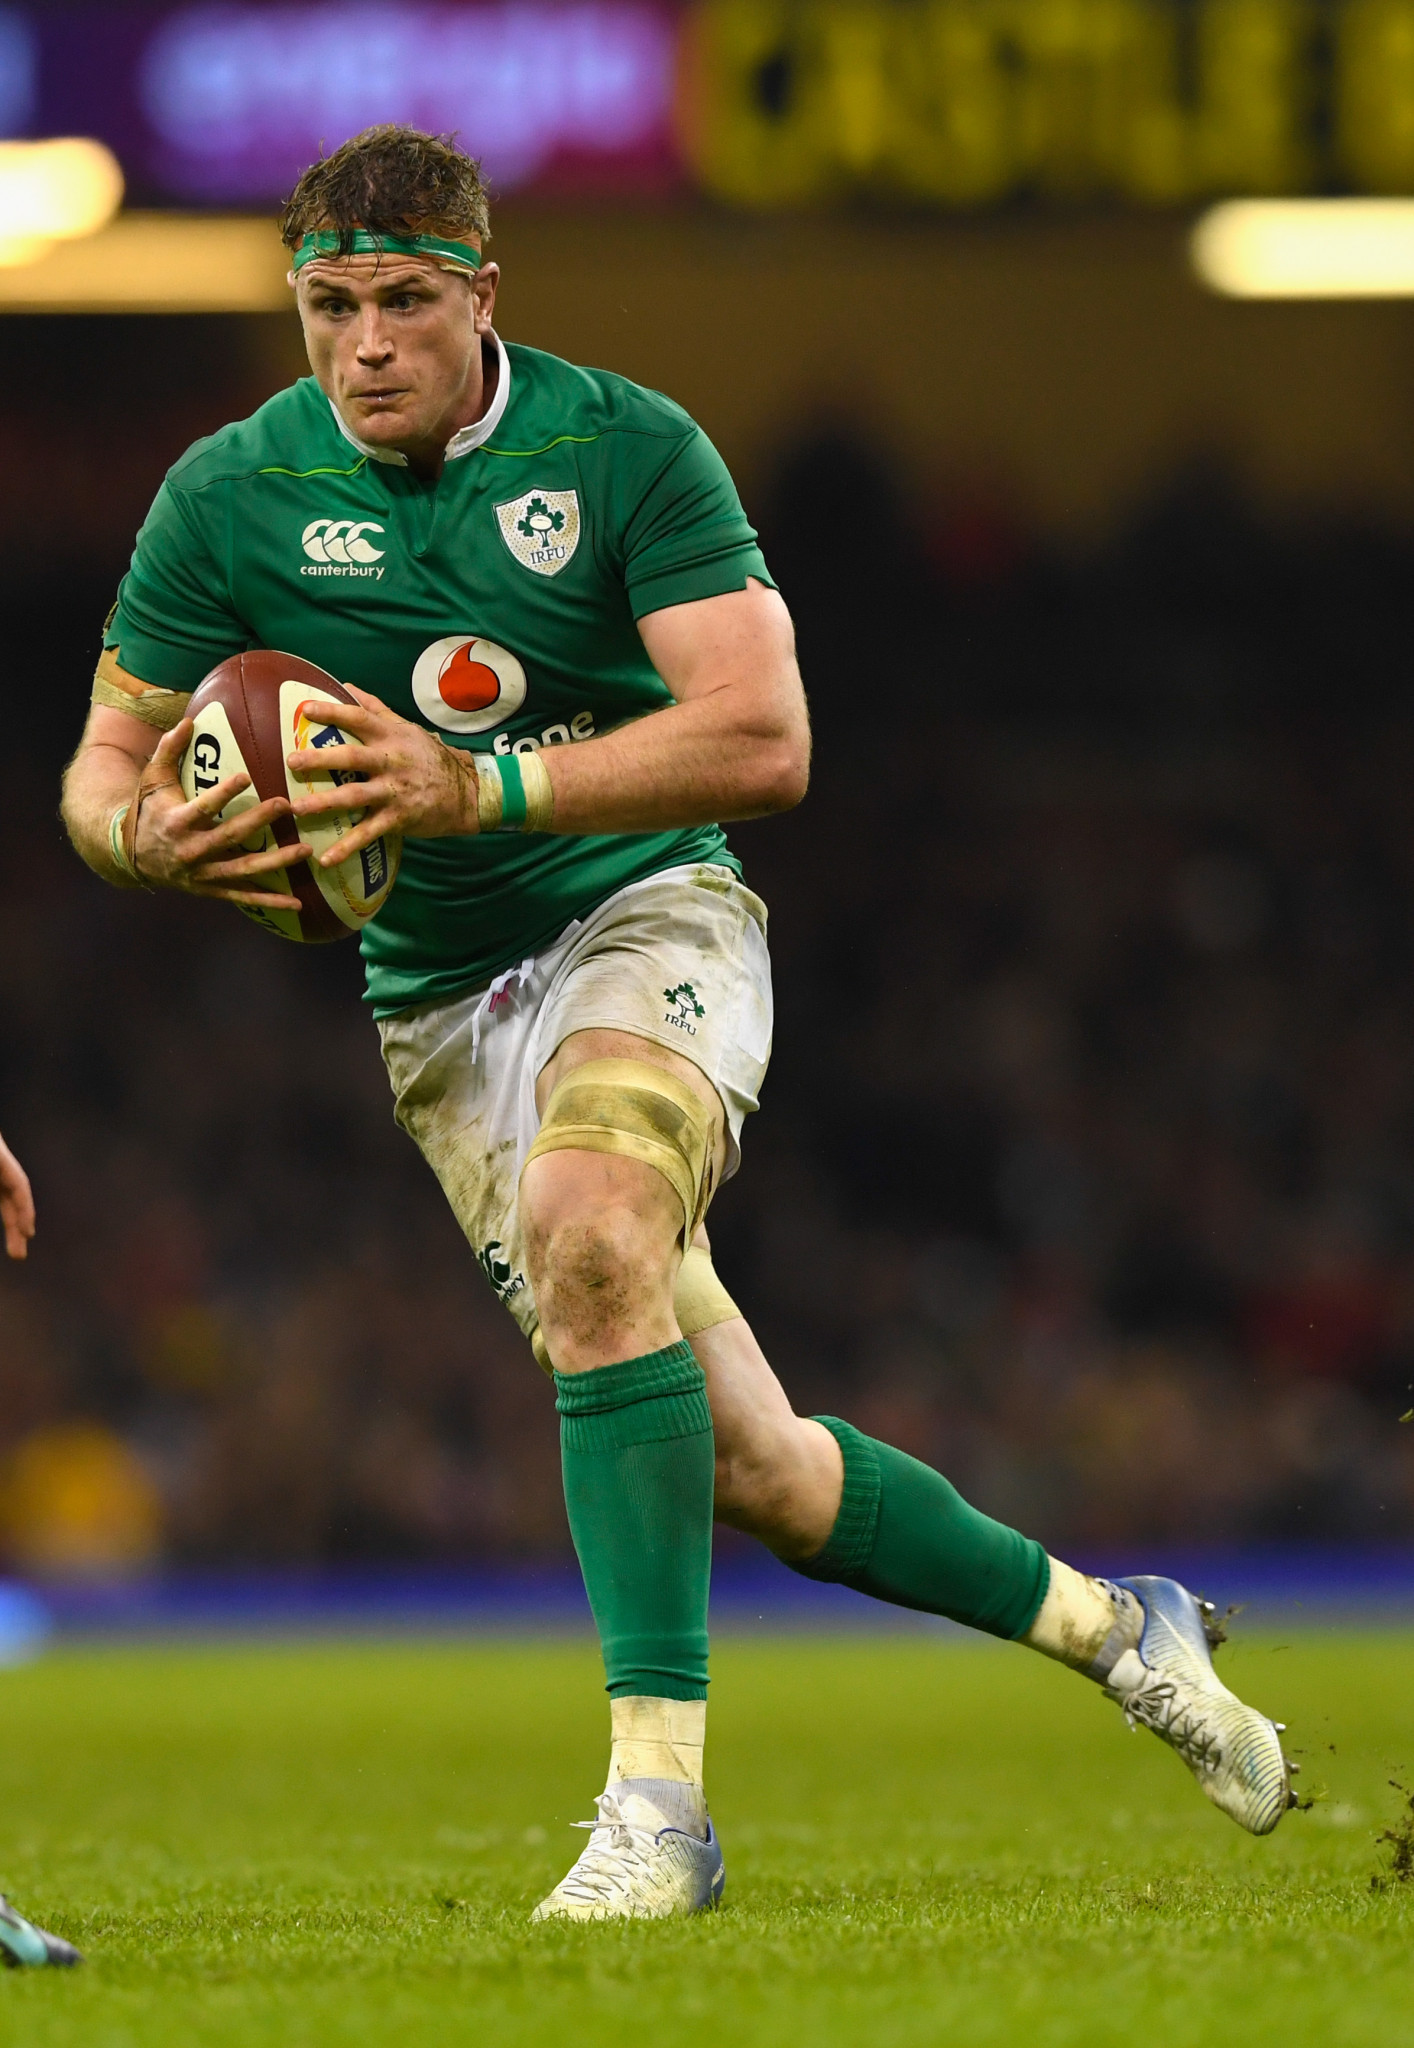 Former Ireland captain Jamie Heaslip has been appointed as a member of World Rugby's Anti-Doping Advisory Committee former Argentina captain Dr Felipe Contepomi as a player representative ©Getty Images